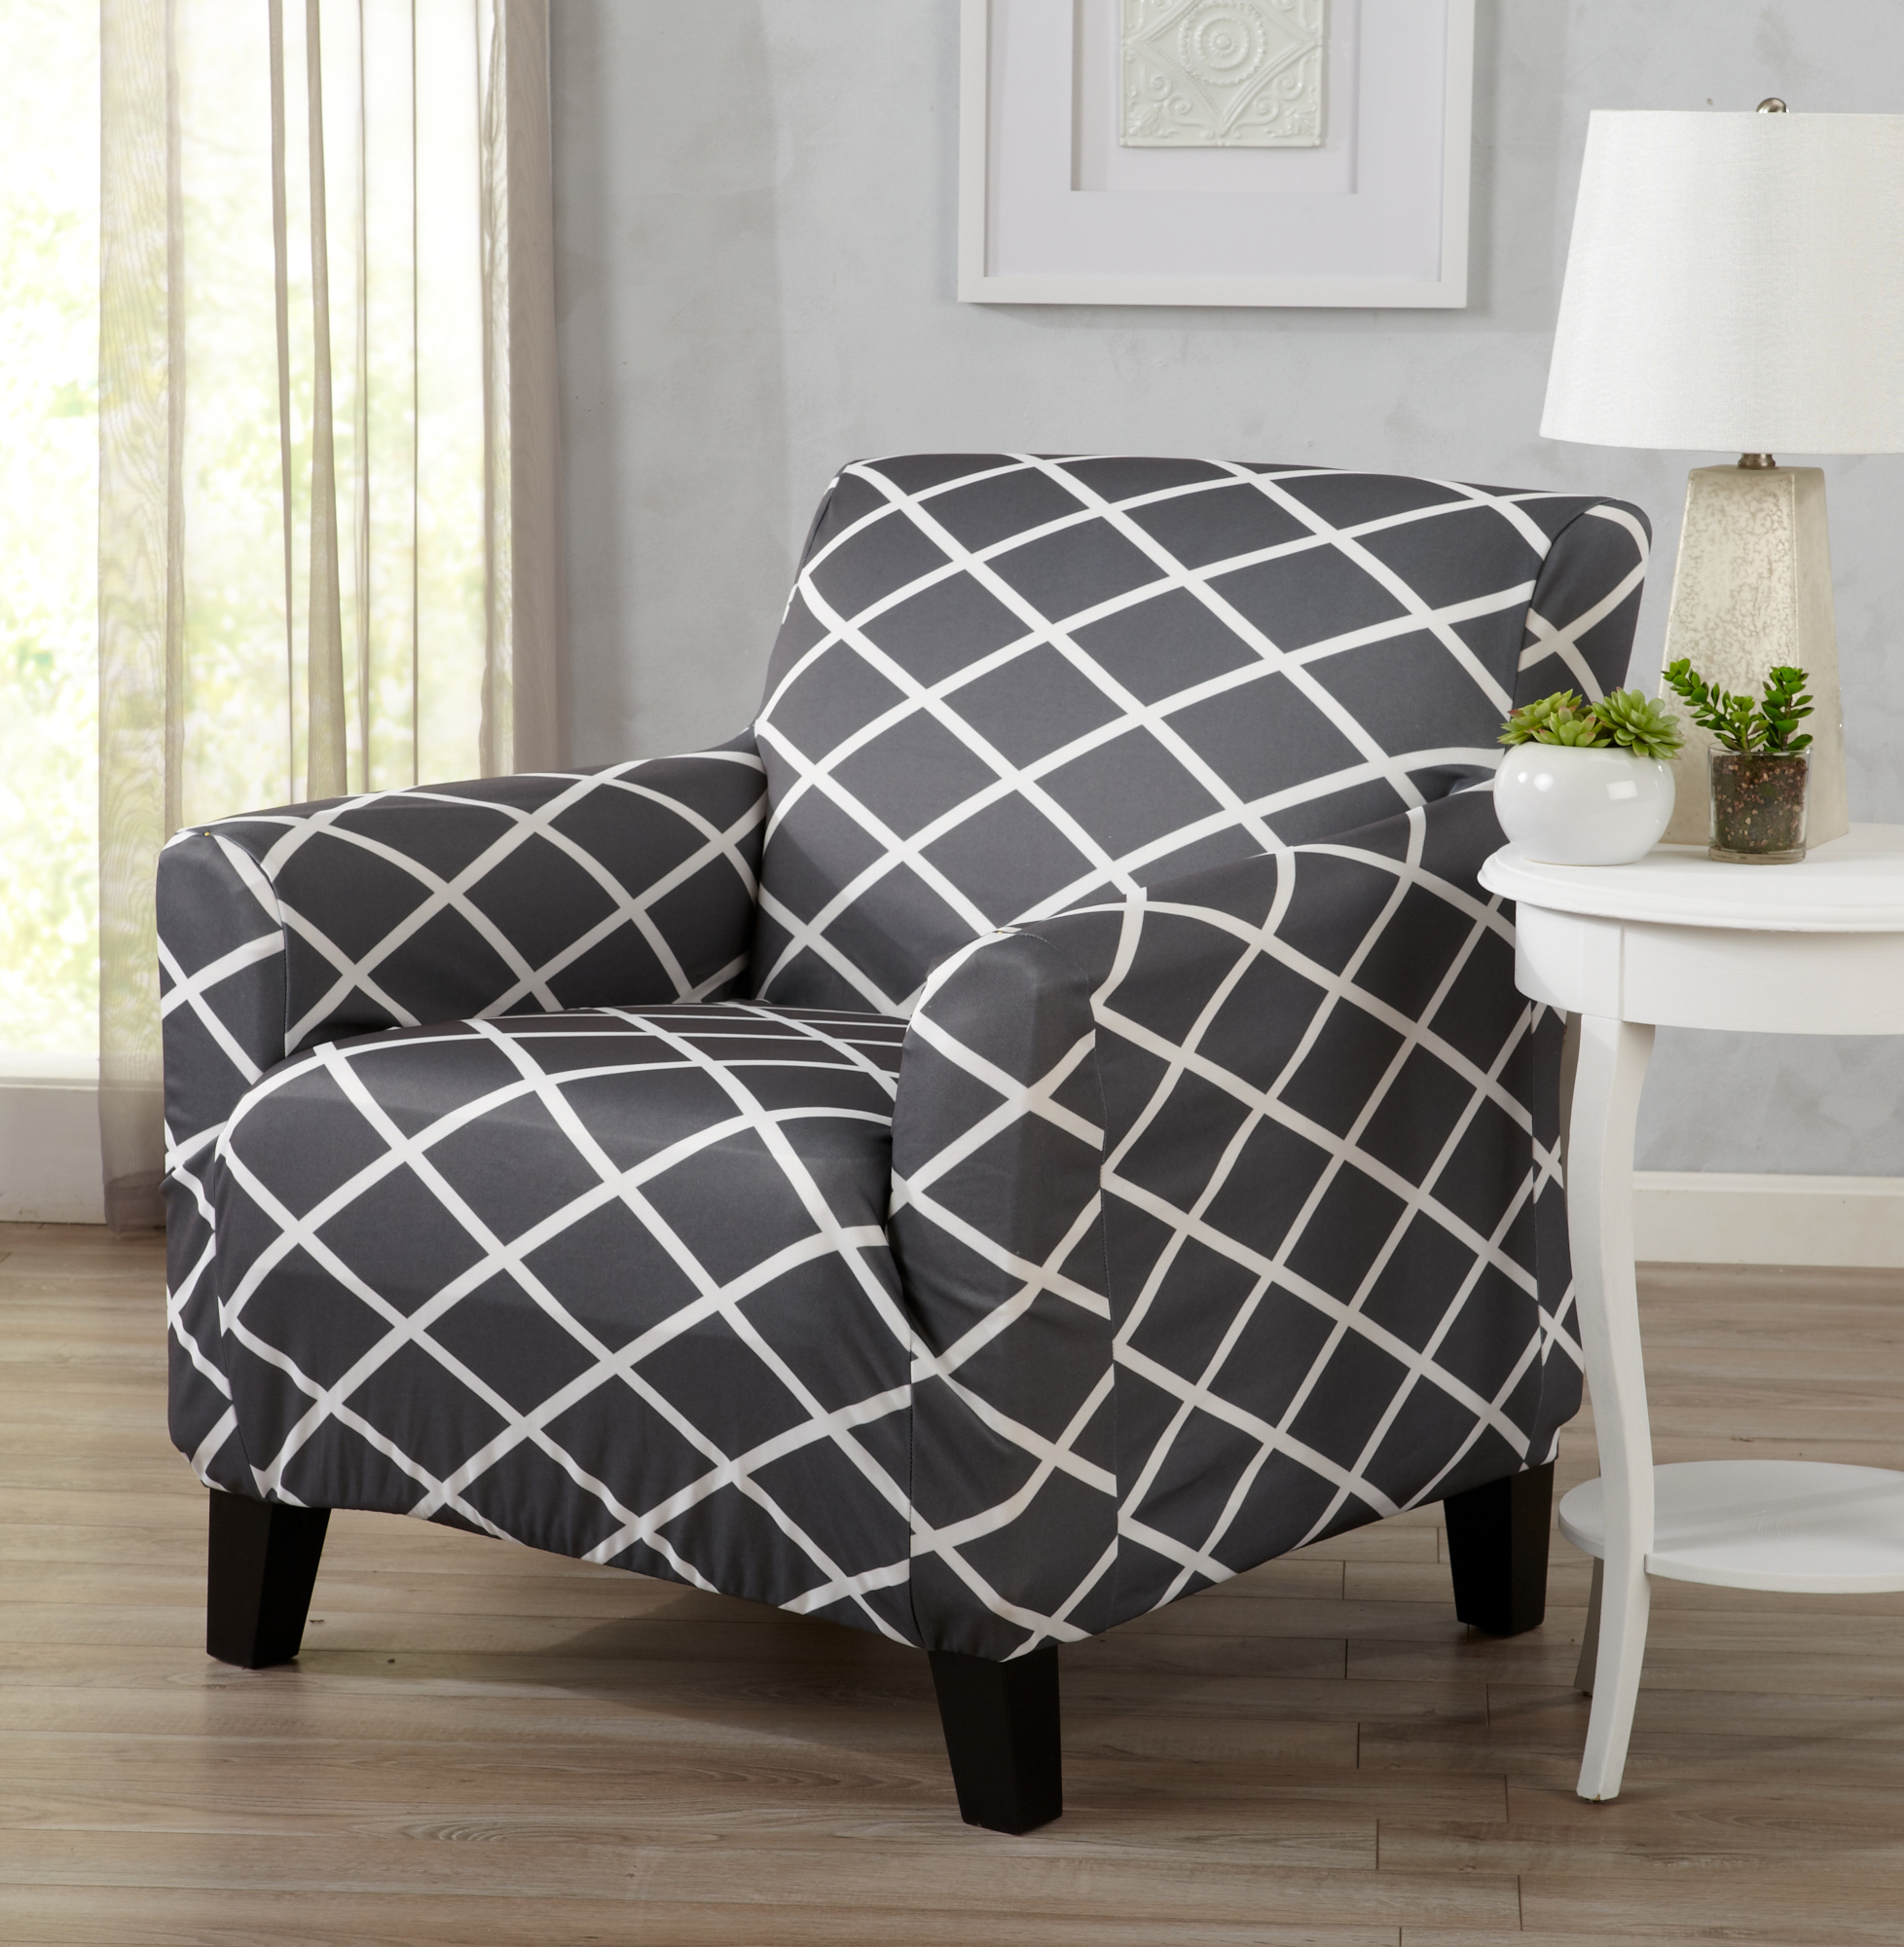 Atlantic Home Fashions Twill Form Fitting Stretch Fit One Piece Diamond Printed Slipcover Couch Cover, Chair, Gray